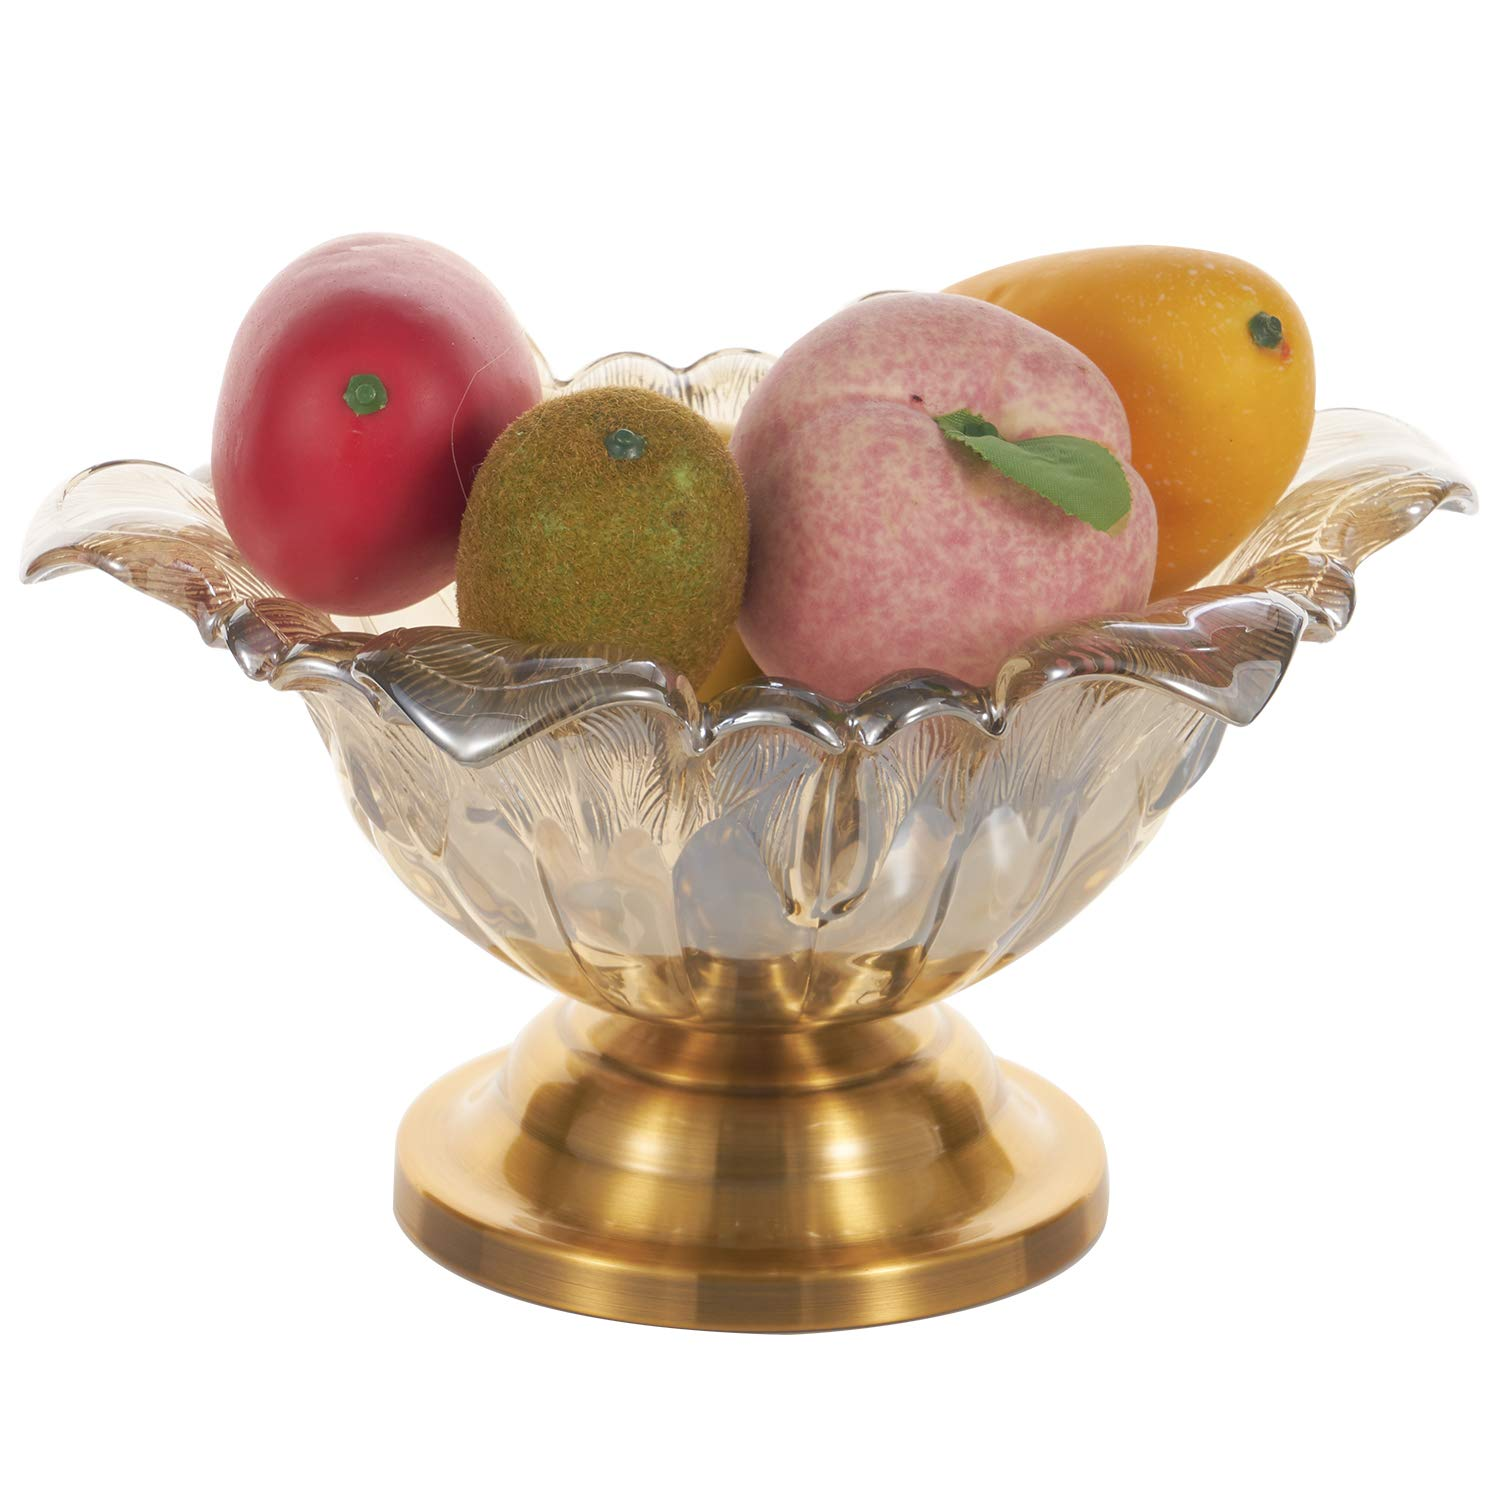 Glass Pedestal Bowl, Footed Compote Bowl, Serving Bowl, Trifle Bowl, Centerpiece Bowl, Decorative Fruit Display Stand Vase Candy Dish for Home Party Wedding Dining Room Decoration (Flower)